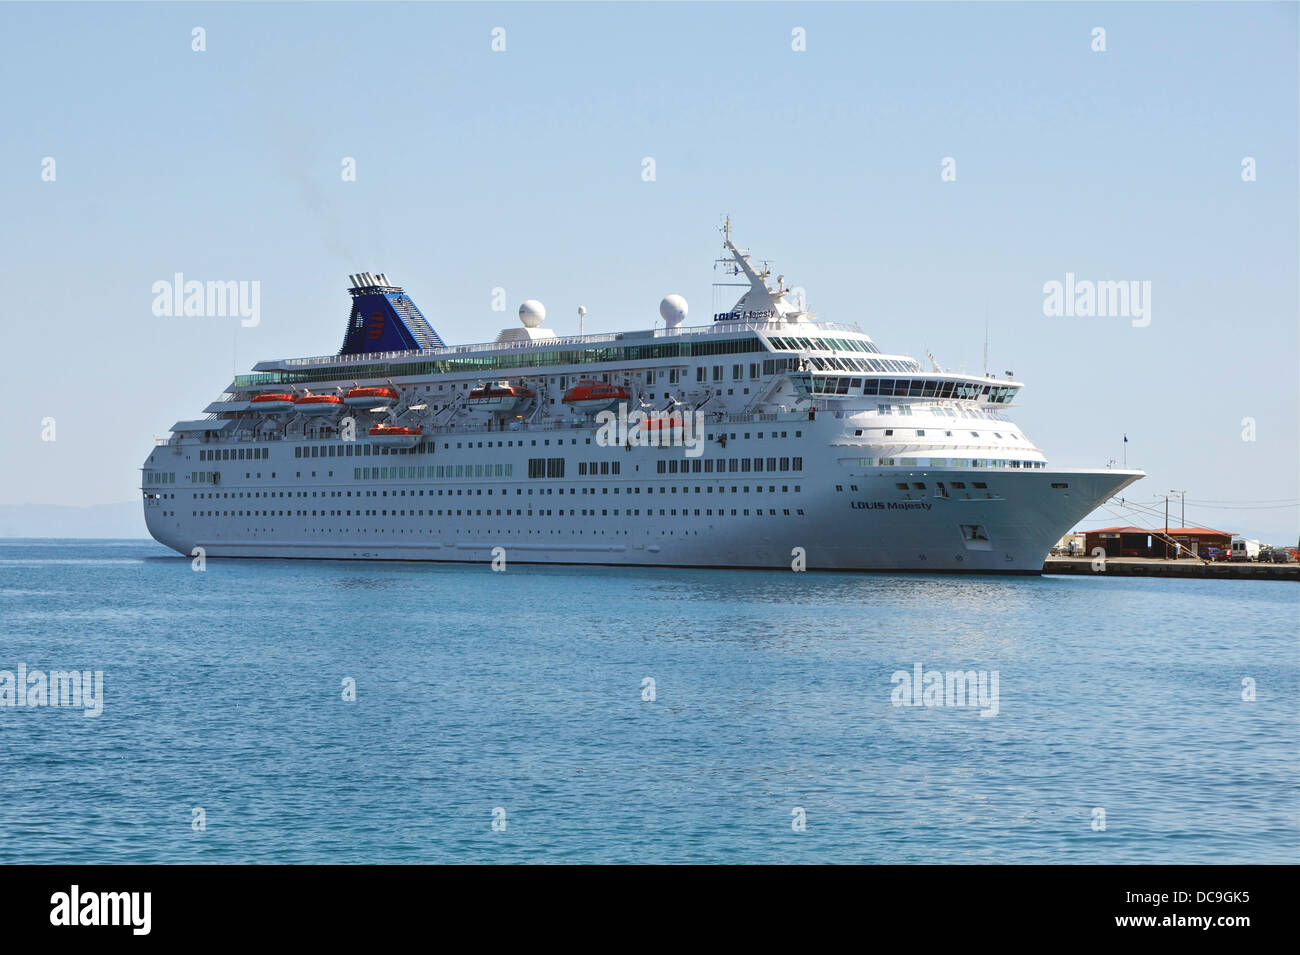 M.S. Louis Majesty (ex Royal Majesty, ex Norwegian Majesty), in the harbour of Rhodes, Island of Rhodes, Greece. - Stock Image